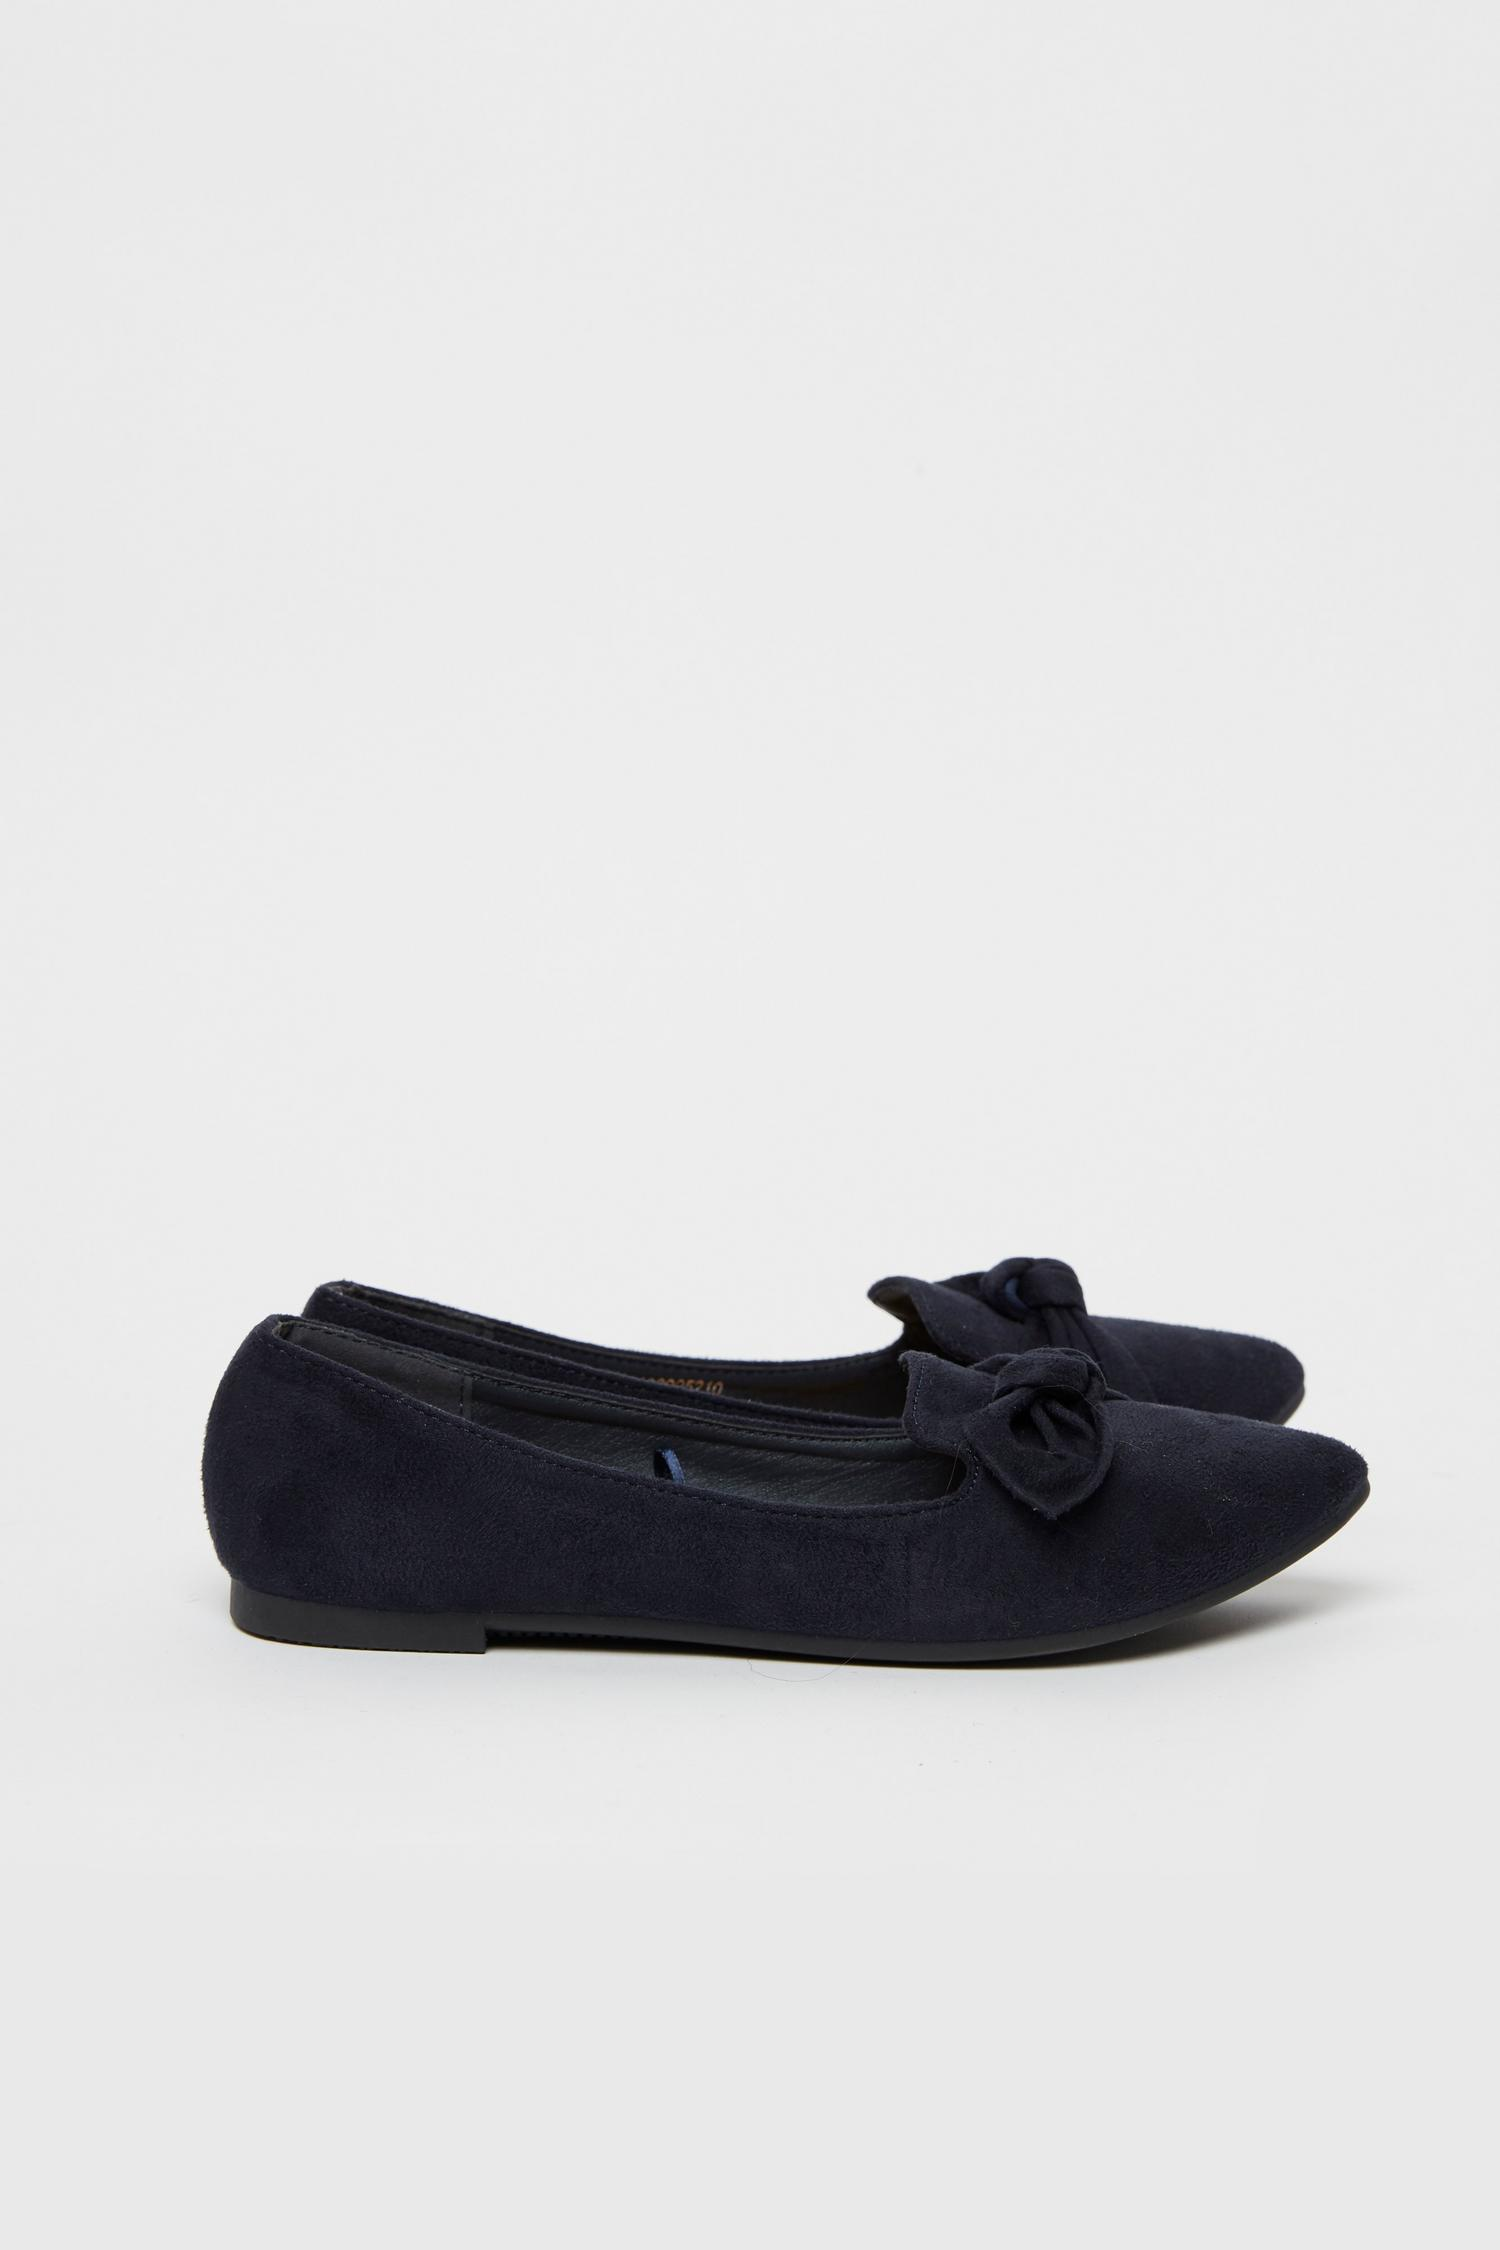 148 Navy Bow Detail Ballet Pump image number 4